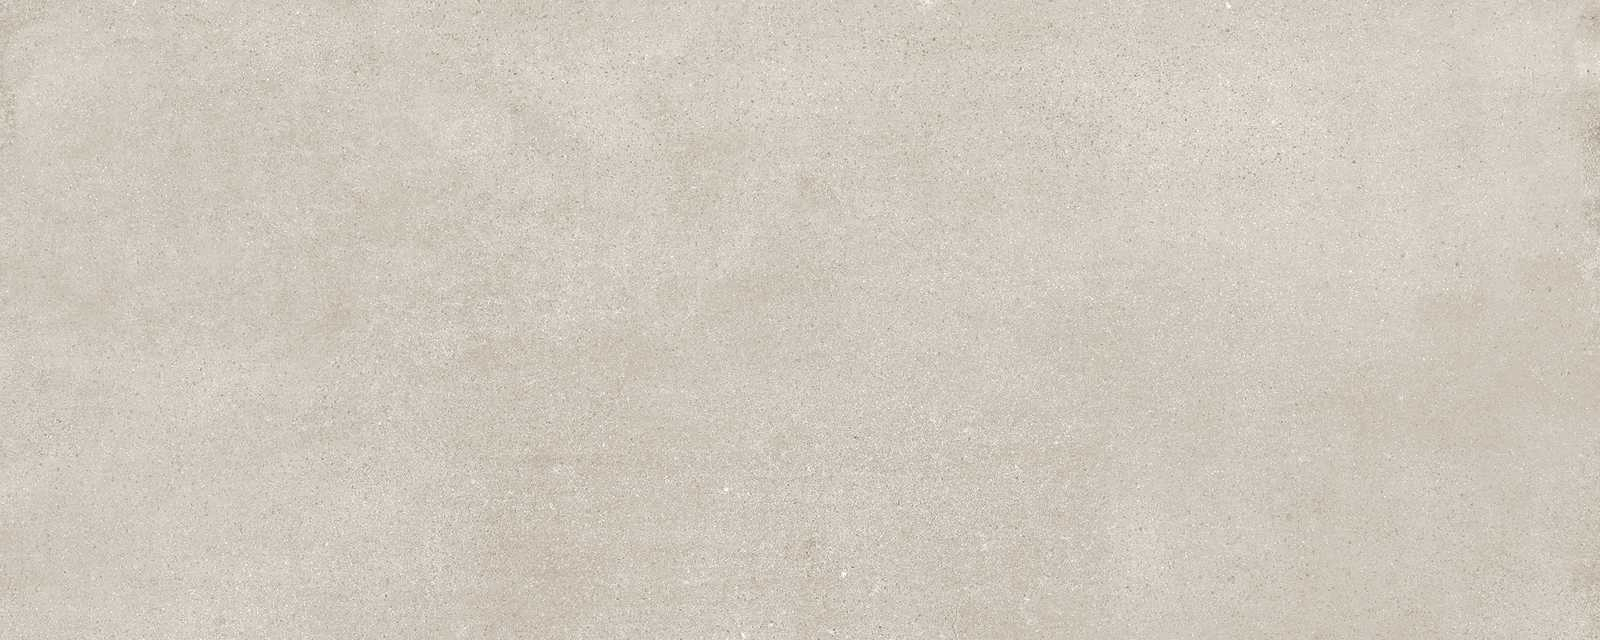 APPEAL   200X500  TAUPE - (Euro/Mq 17,08)